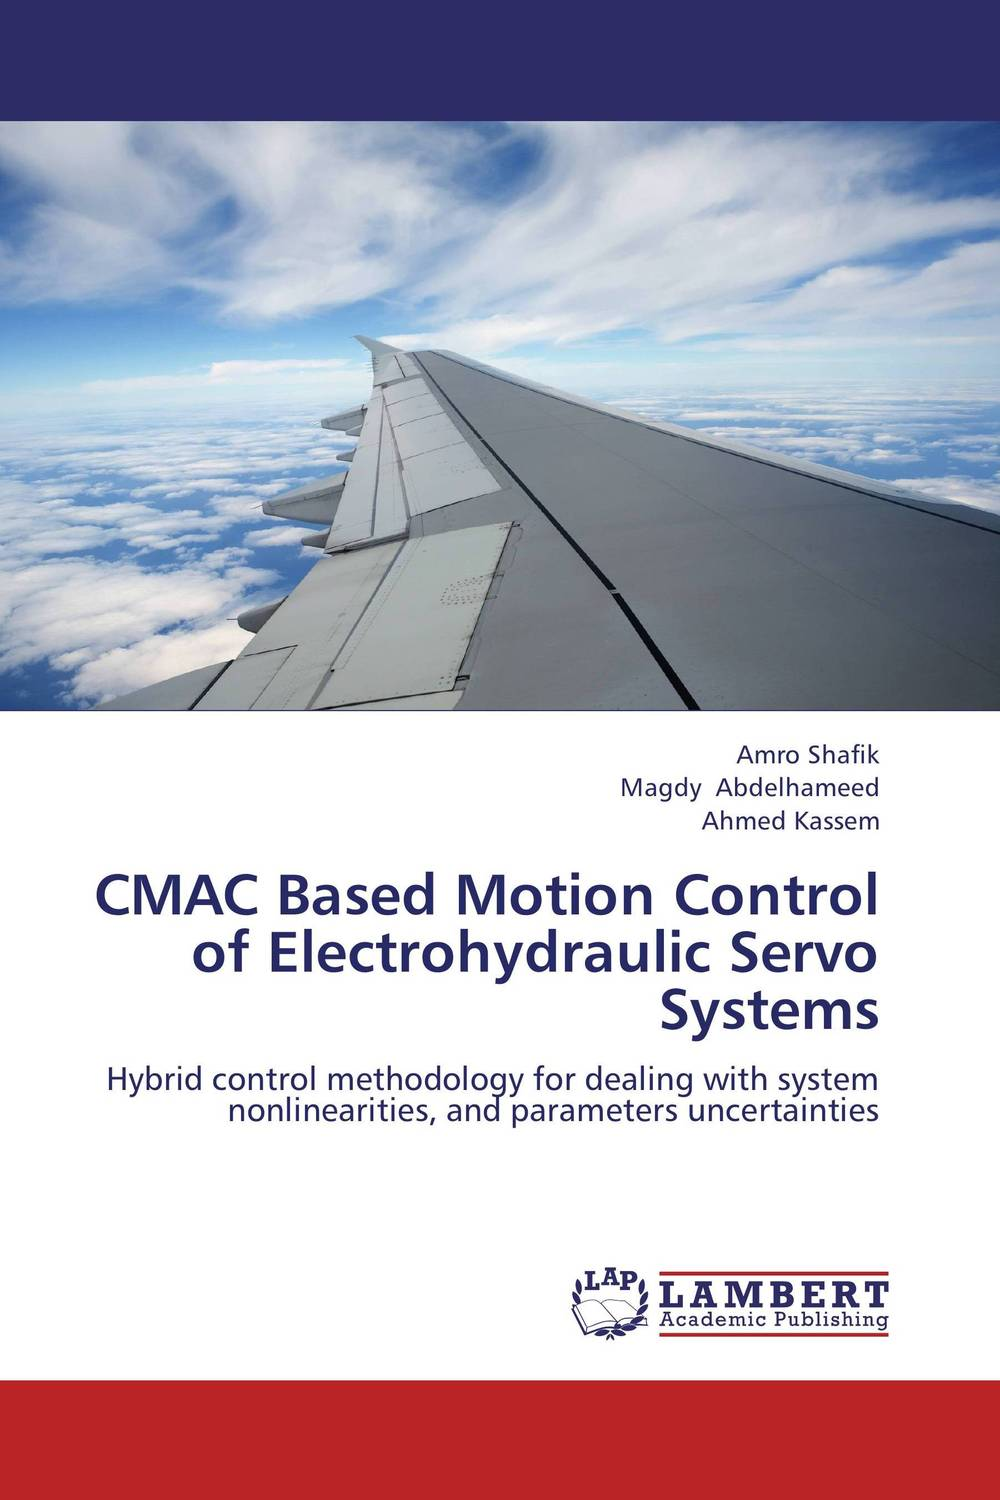 все цены на CMAC Based Motion Control of Electrohydraulic Servo Systems